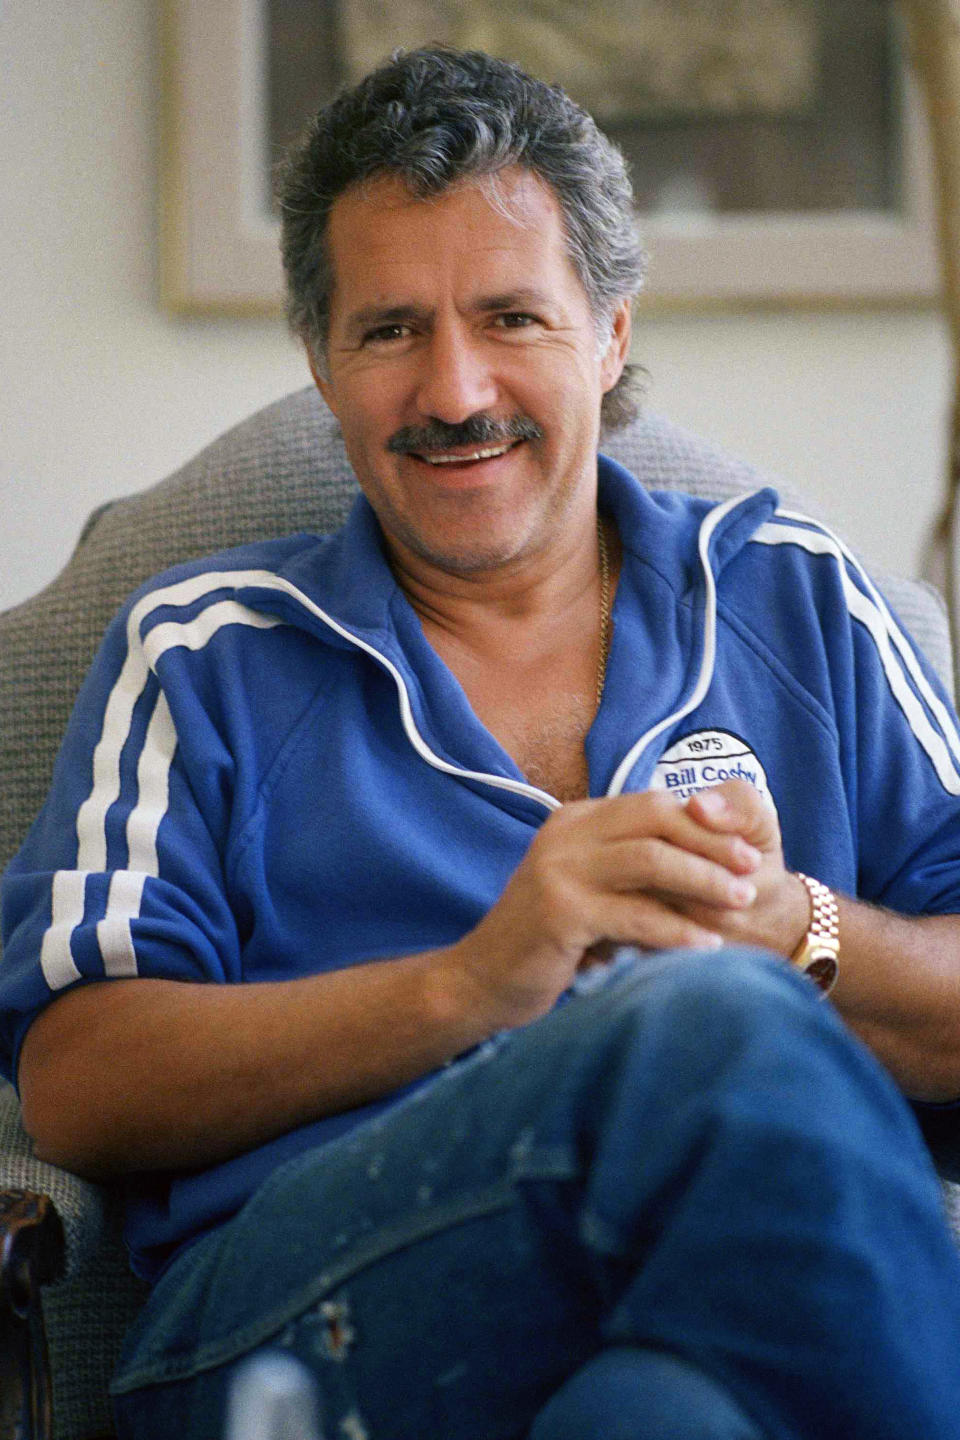 """FILE - Alex Trebek poses in his home in Los Angeles, in this July 7, 1988, file photo. Jeopardy!"""" host Alex Trebek died Sunday, Nov. 8, 2020, after battling pancreatic cancer for nearly two years. Trebek died at home with family and friends surrounding him, """"Jeopardy!"""" studio Sony said in a statement. Trebek presided over the beloved quiz show for more than 30 years.(AP Photo/Alan Greth, File)"""